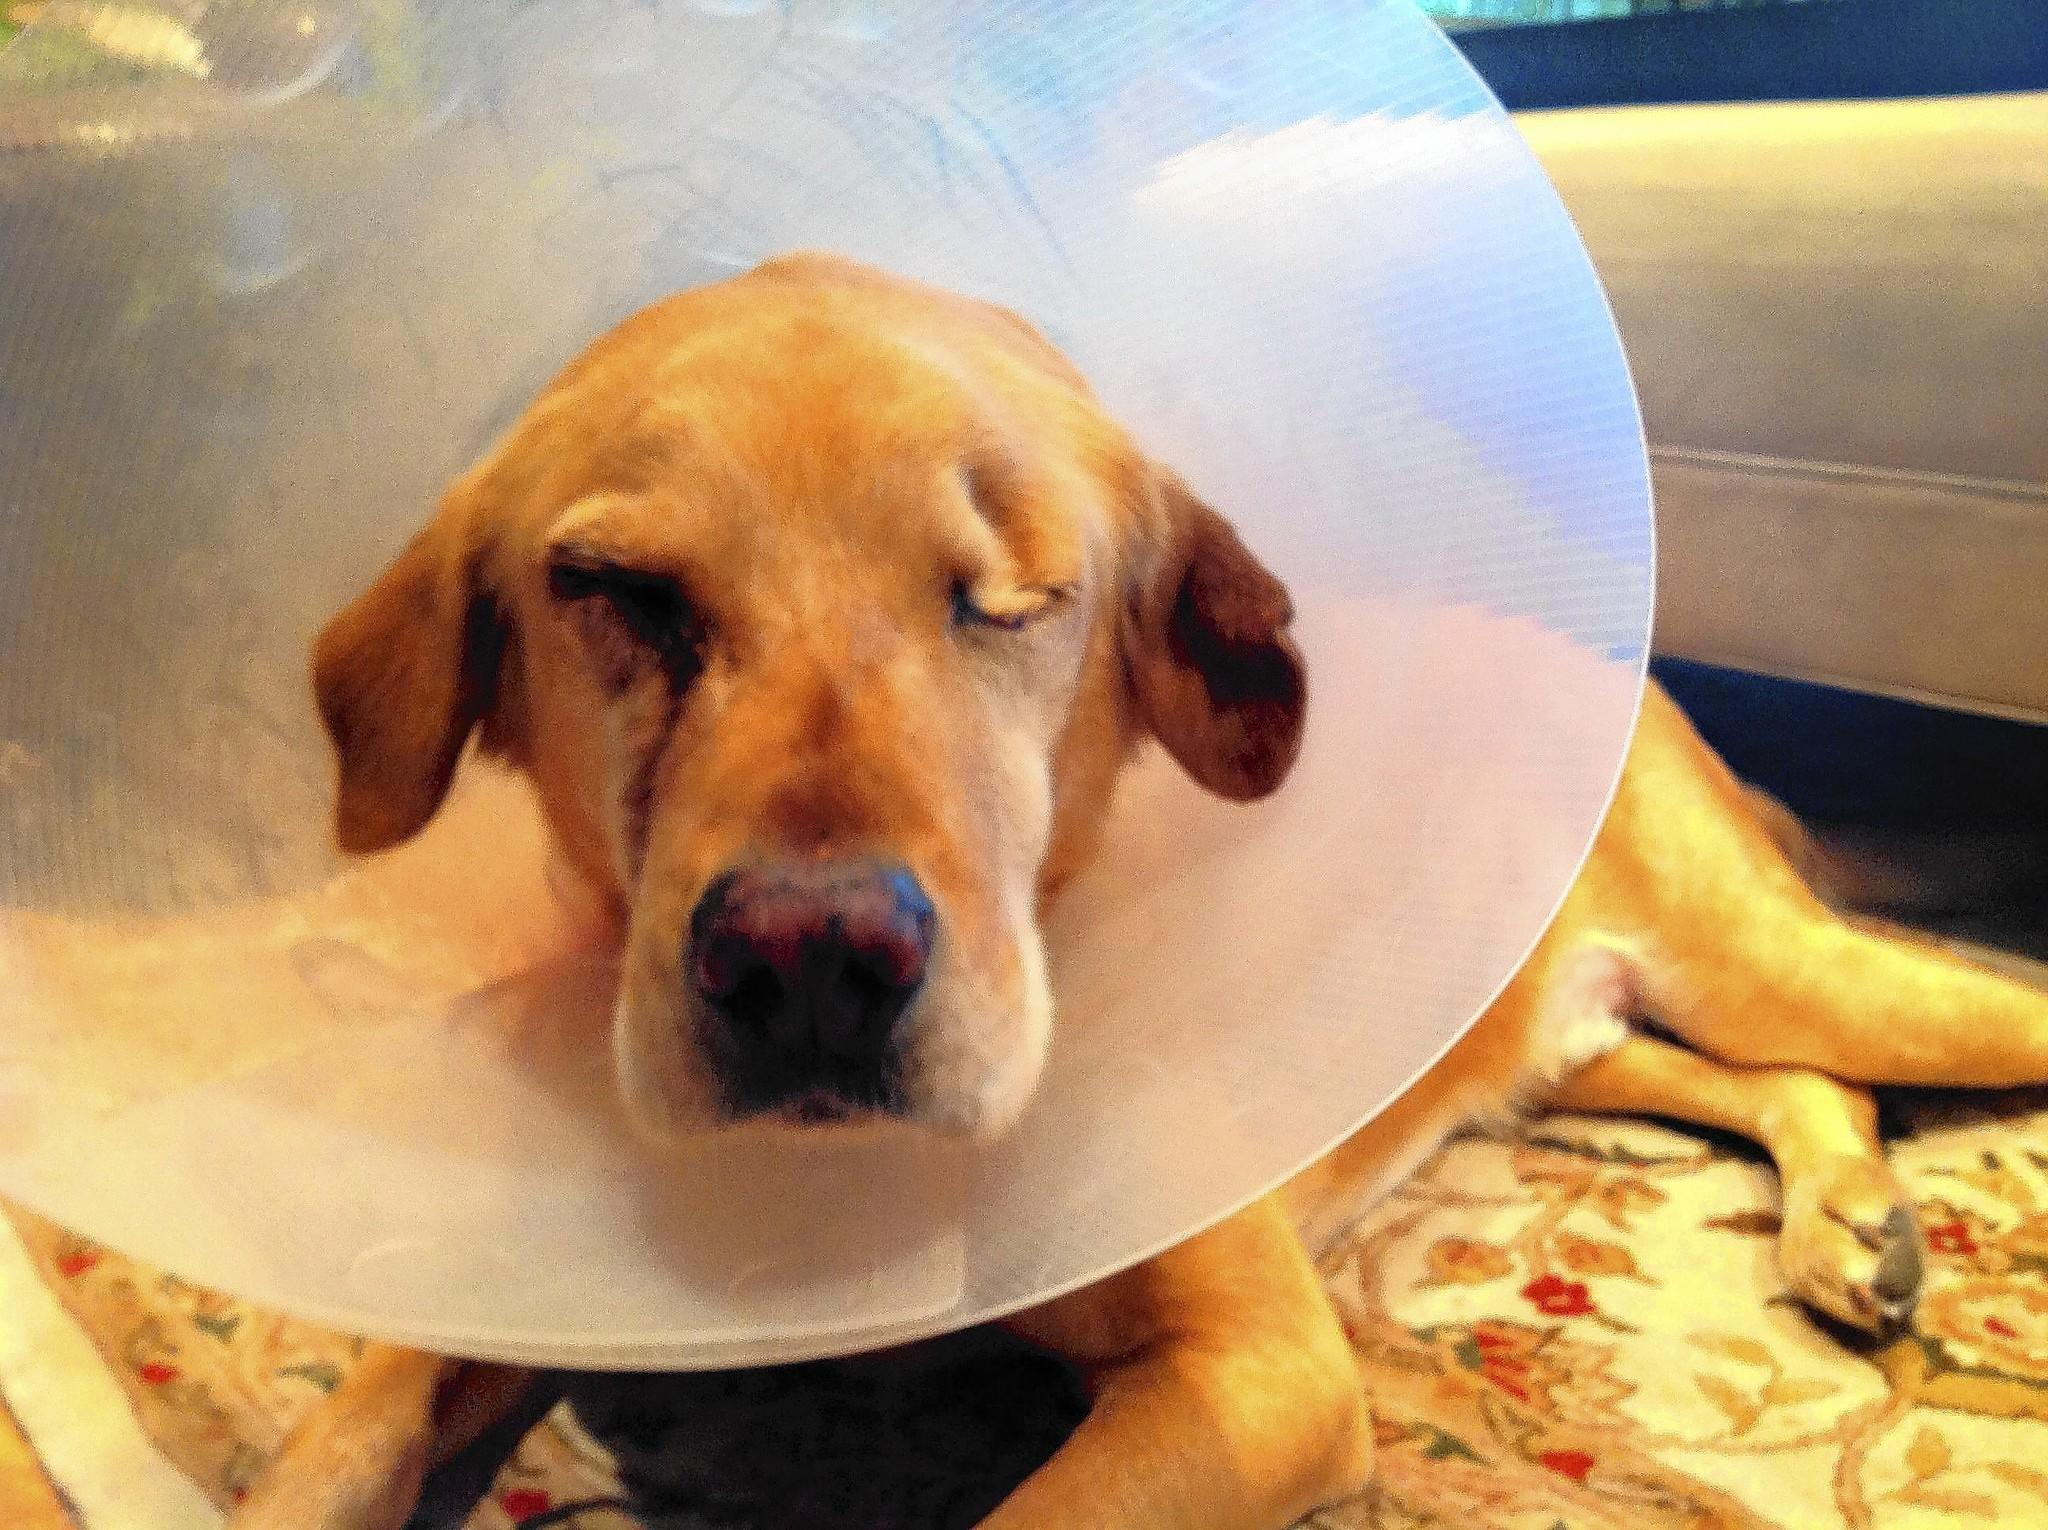 Petey, a Labrador mix, has been treated for a variety of ailments, including losing his sight.